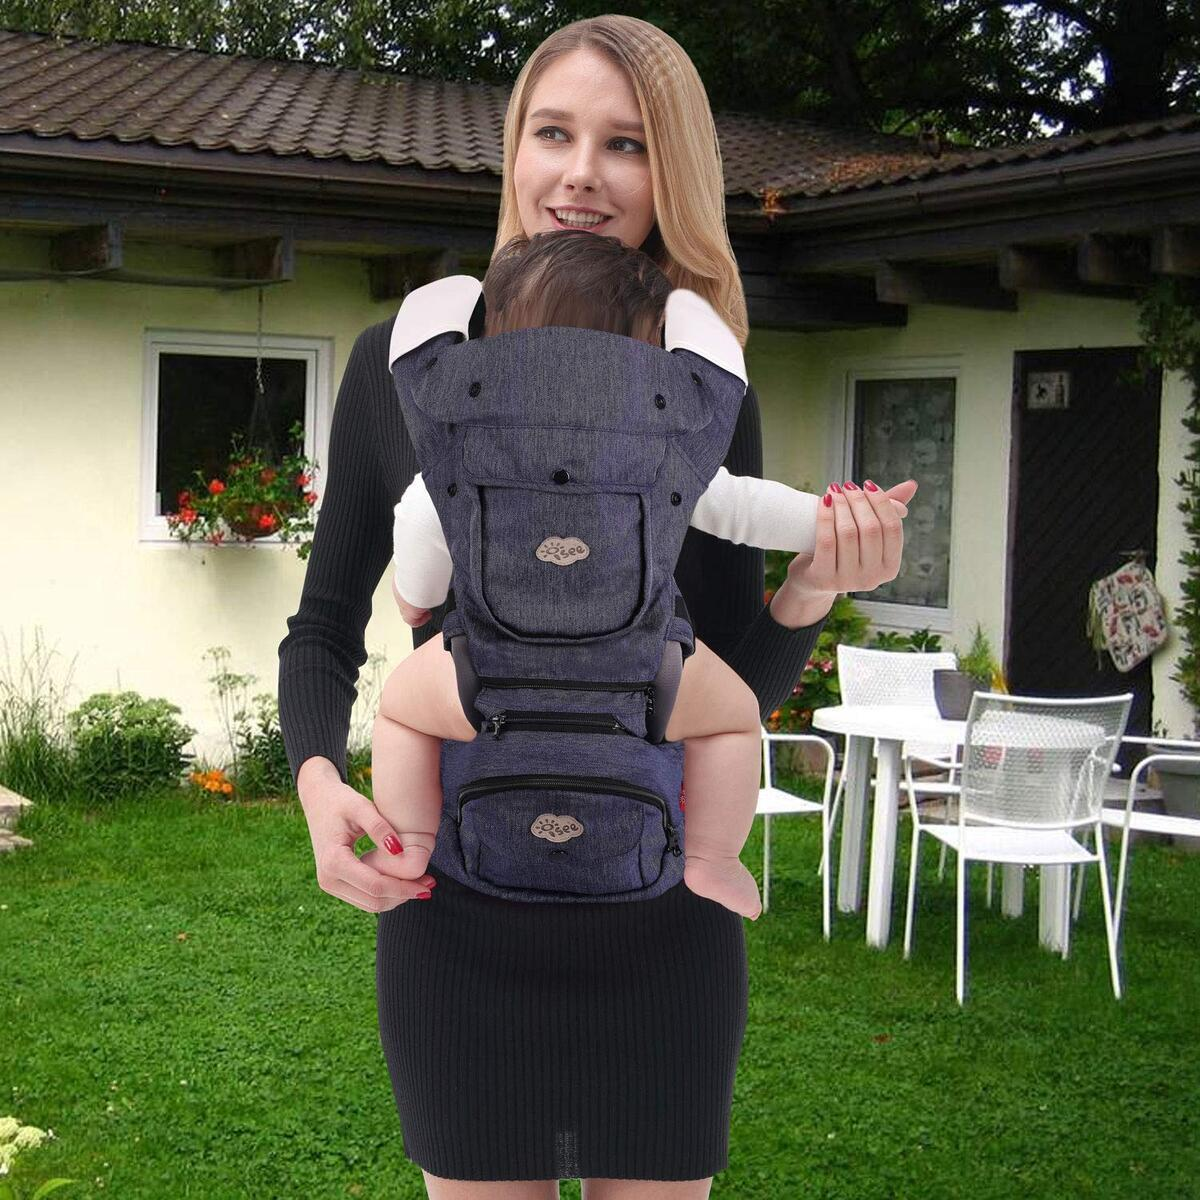 BC882B ERGONOMIC BABY CARRIER